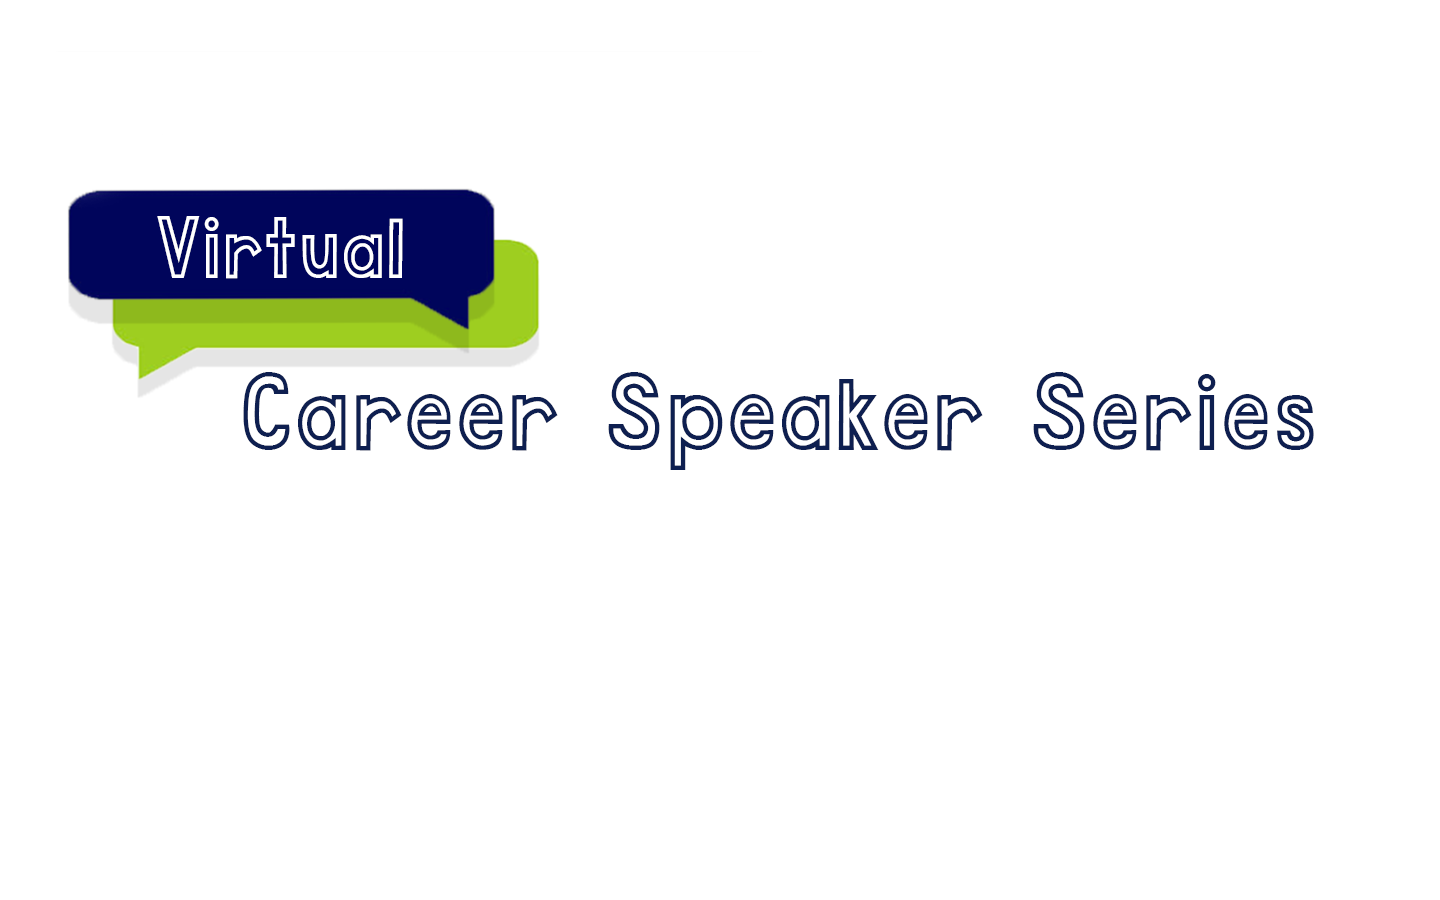 Virtual Career Speaker Series